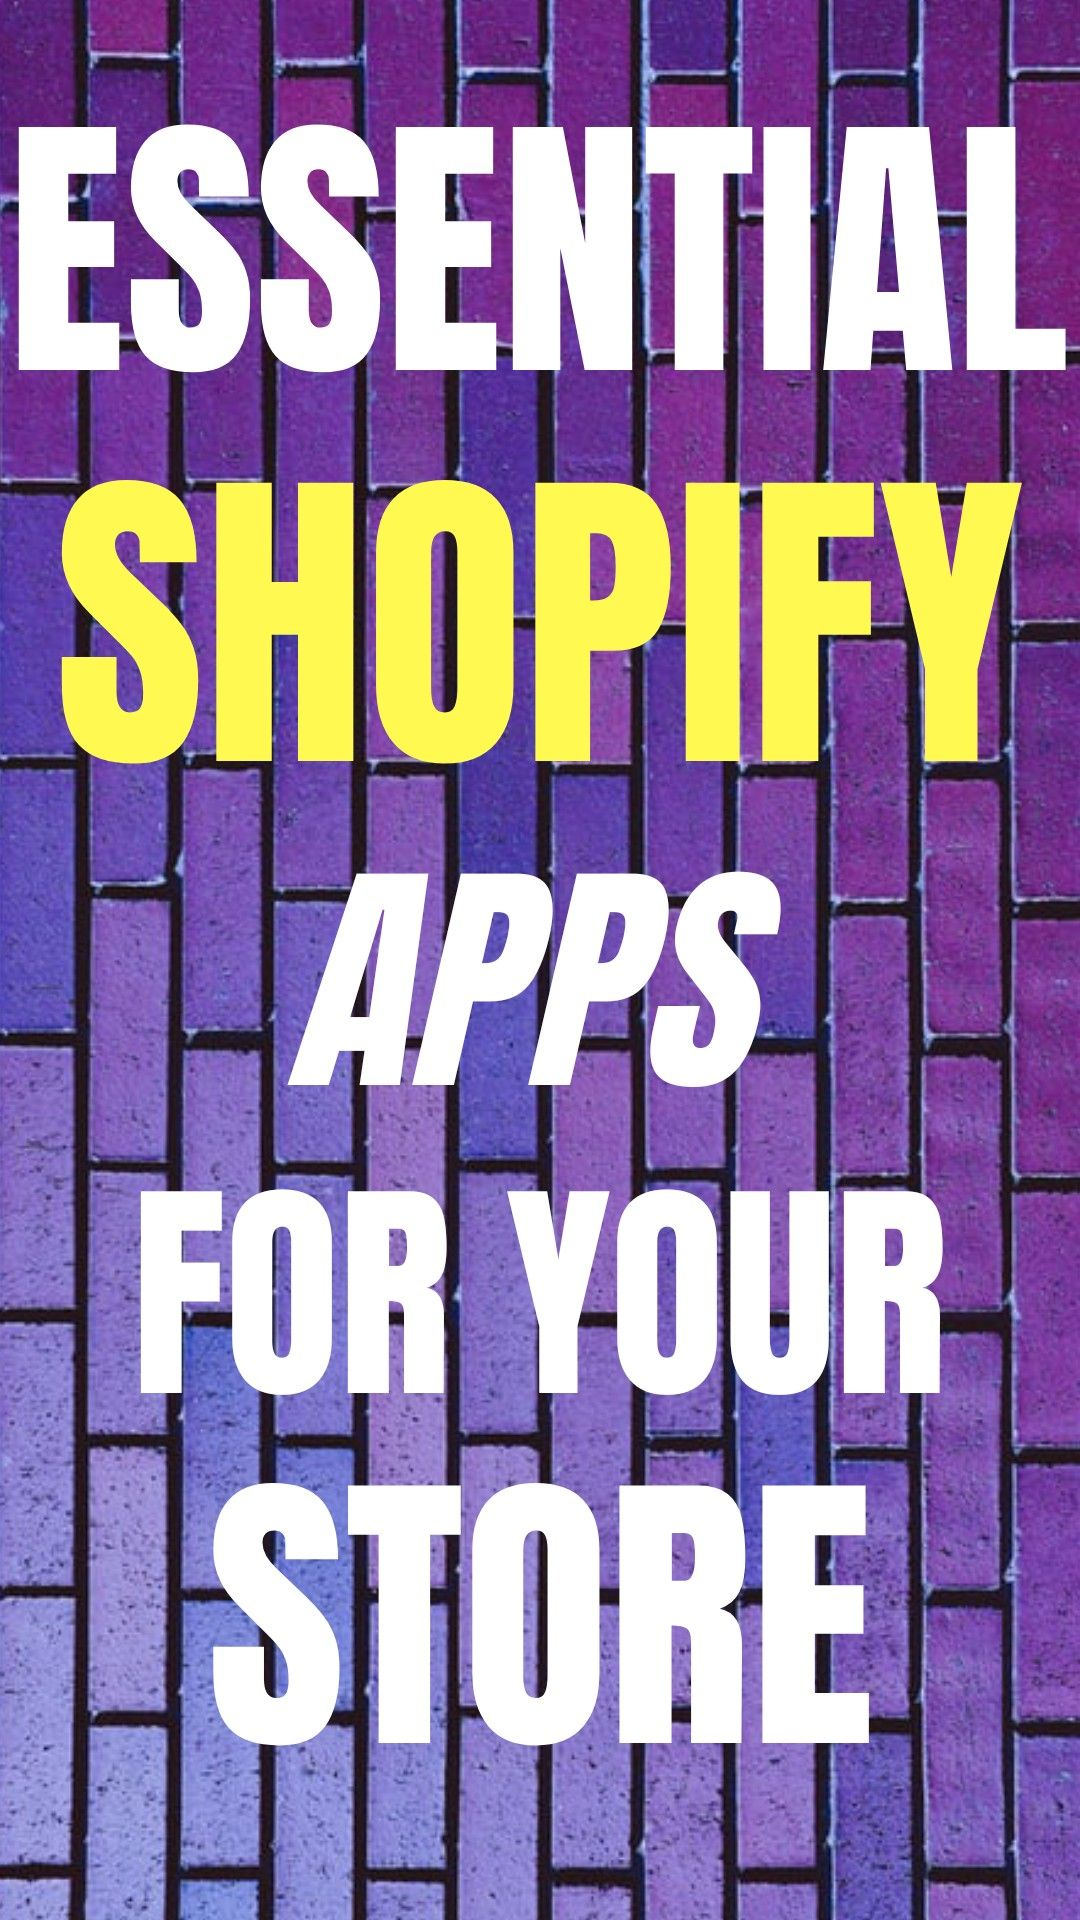 The best apps for your shopify store Young Retiree